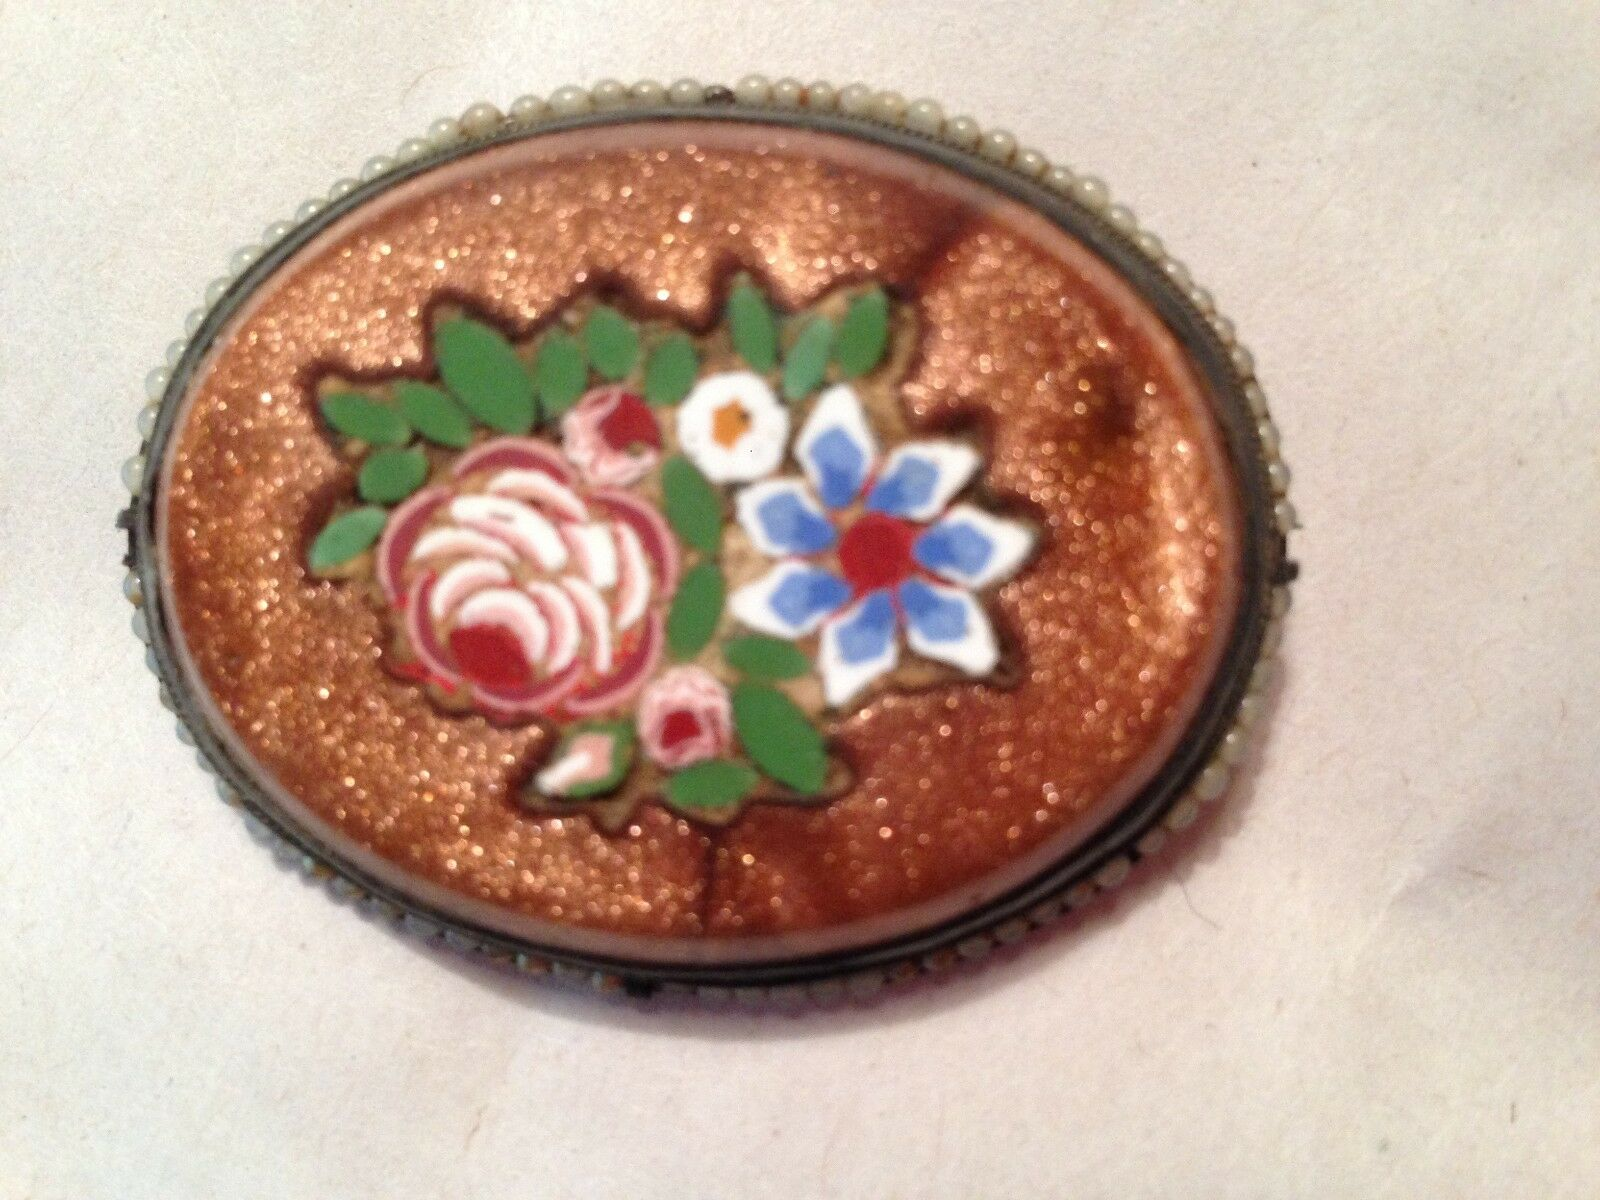 1 7 8x1 5 8  vintage oval coat pin,flower inlay in cameo setting,seed pearls